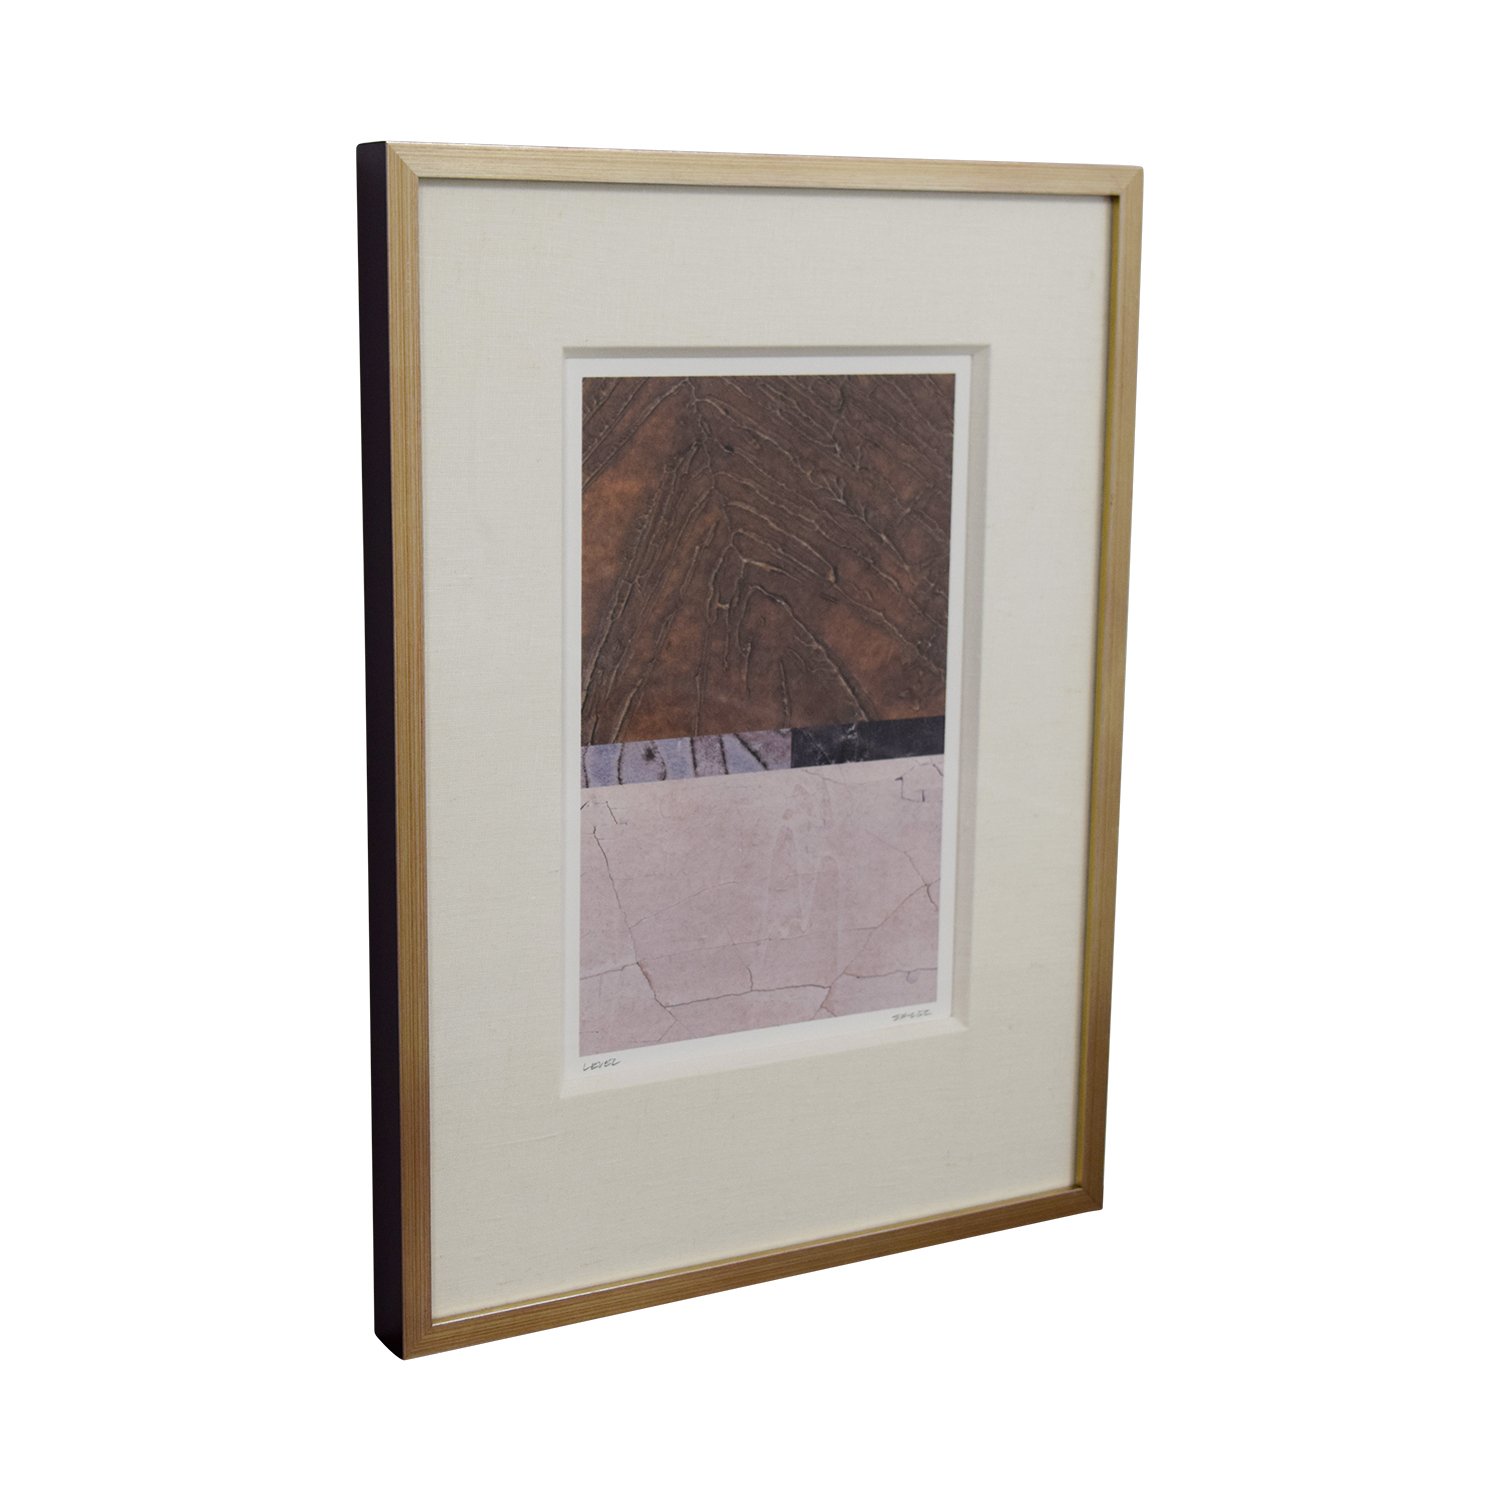 Level Framed Artwork for sale